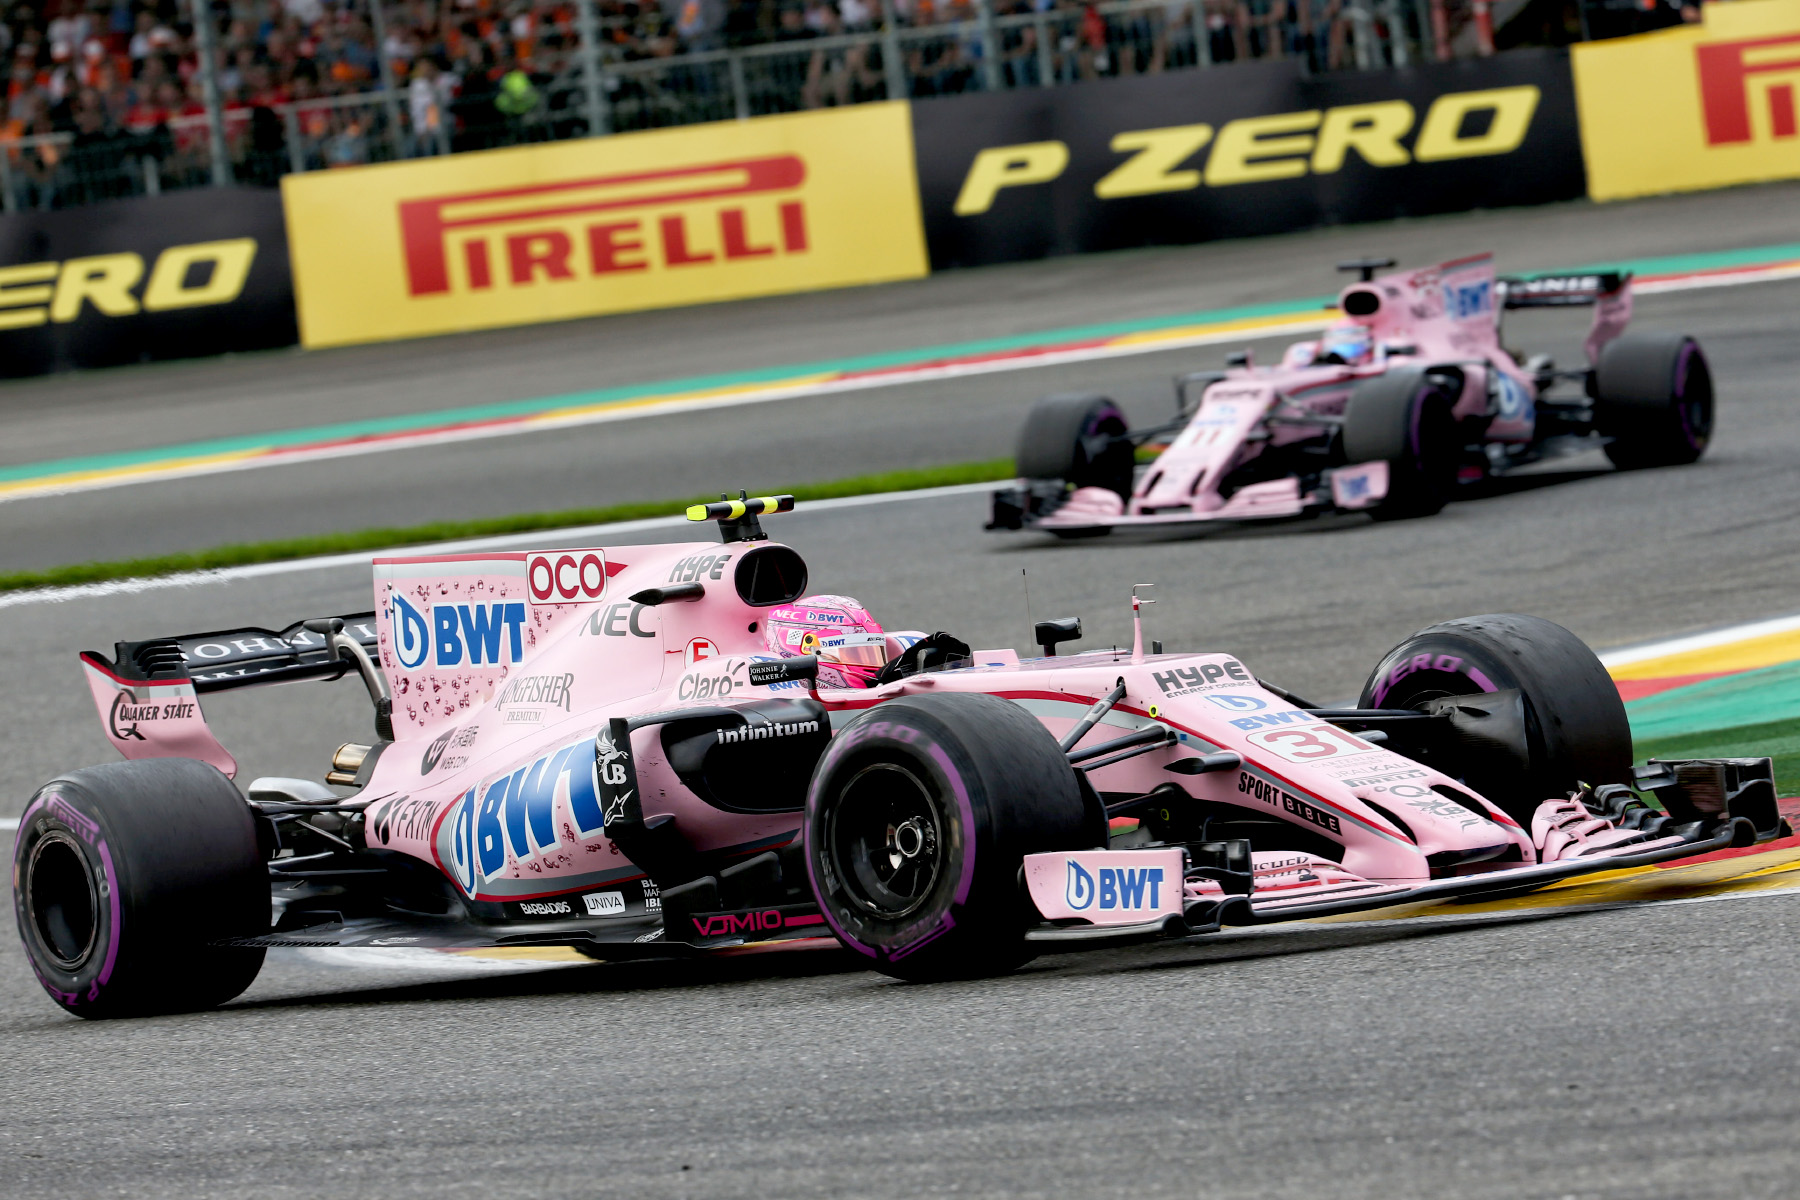 Esteban Ocon leads Force India teammate Sergio Perez at the 2017 Belgian Grand Prix.